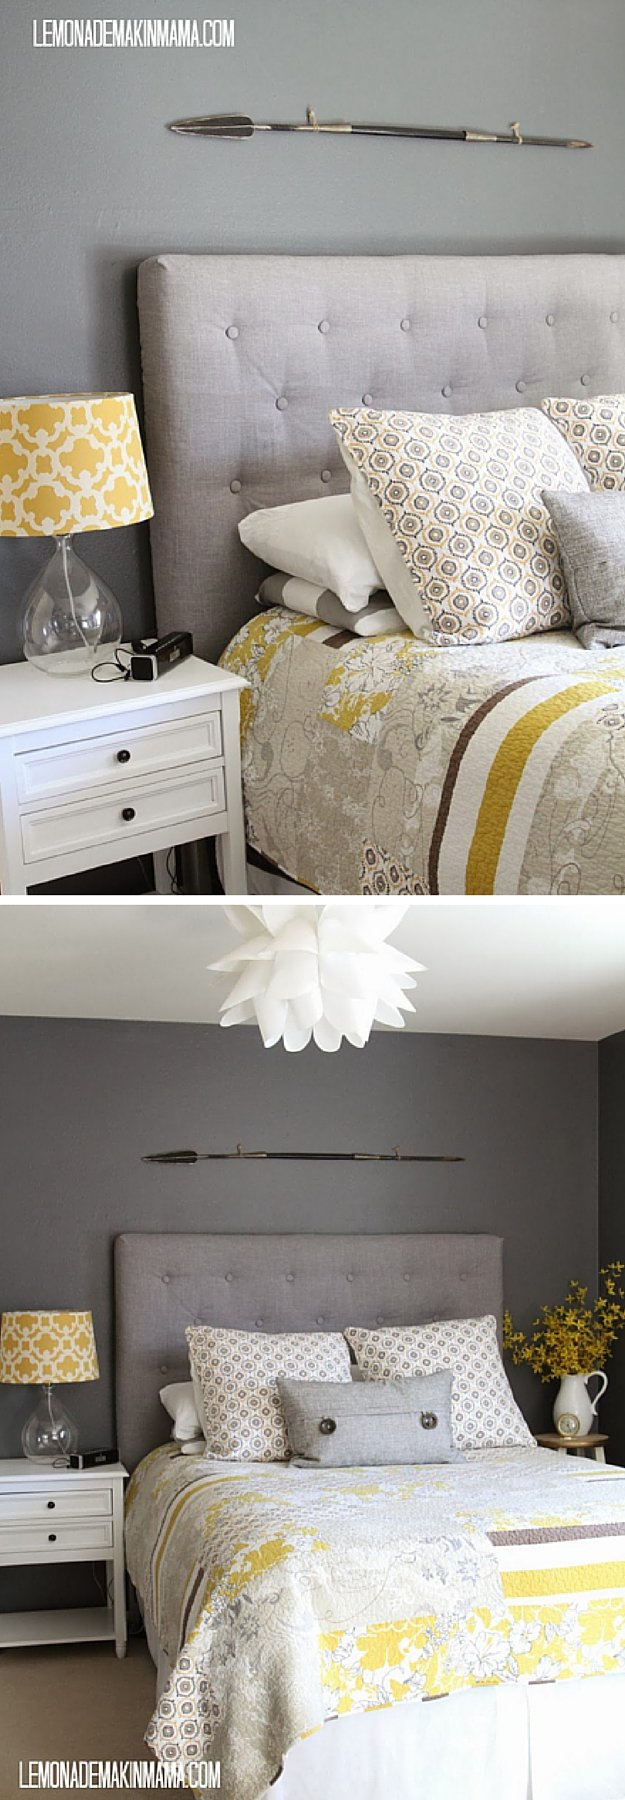 How To Make A Tufted Headboard DIY Projects Craft Ideas